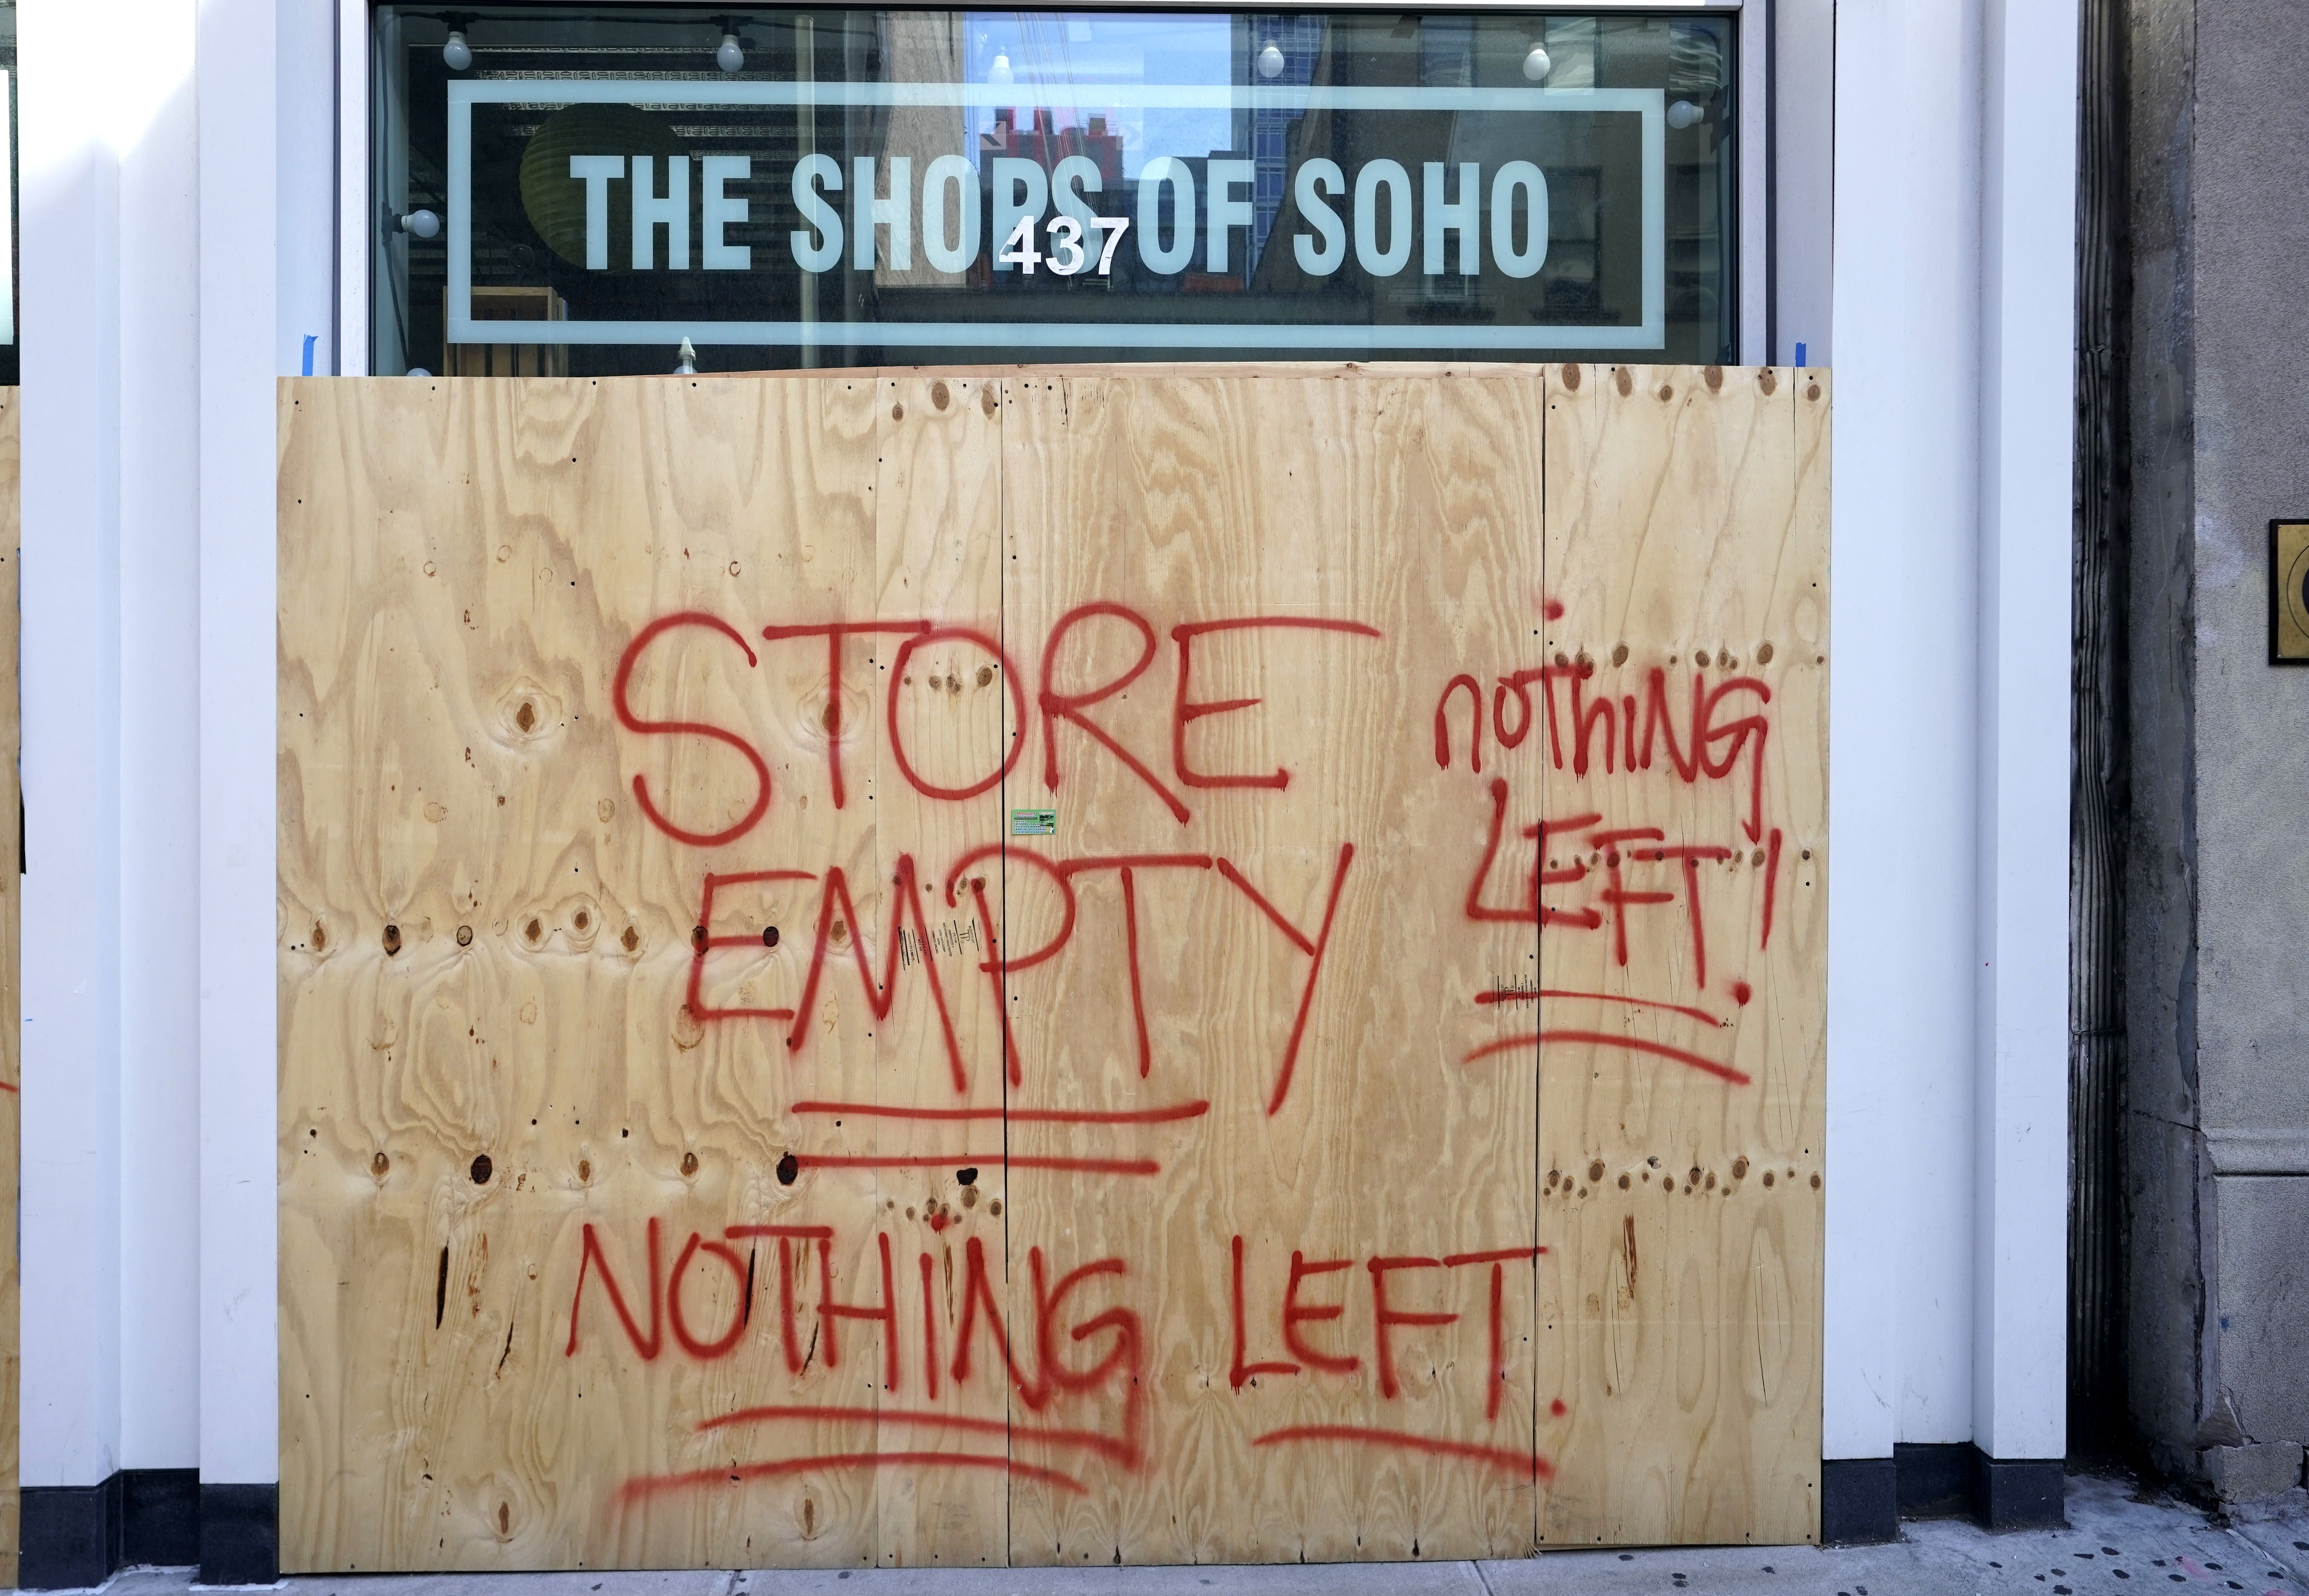 The Shoes of Soho store is seen boarded up on June 8, 2020 after rampant open looting and vandalism in New York, following the Minneapolis police killing of George Floyd. (Photo by TIMOTHY A. CLARY/AFP via Getty Images)